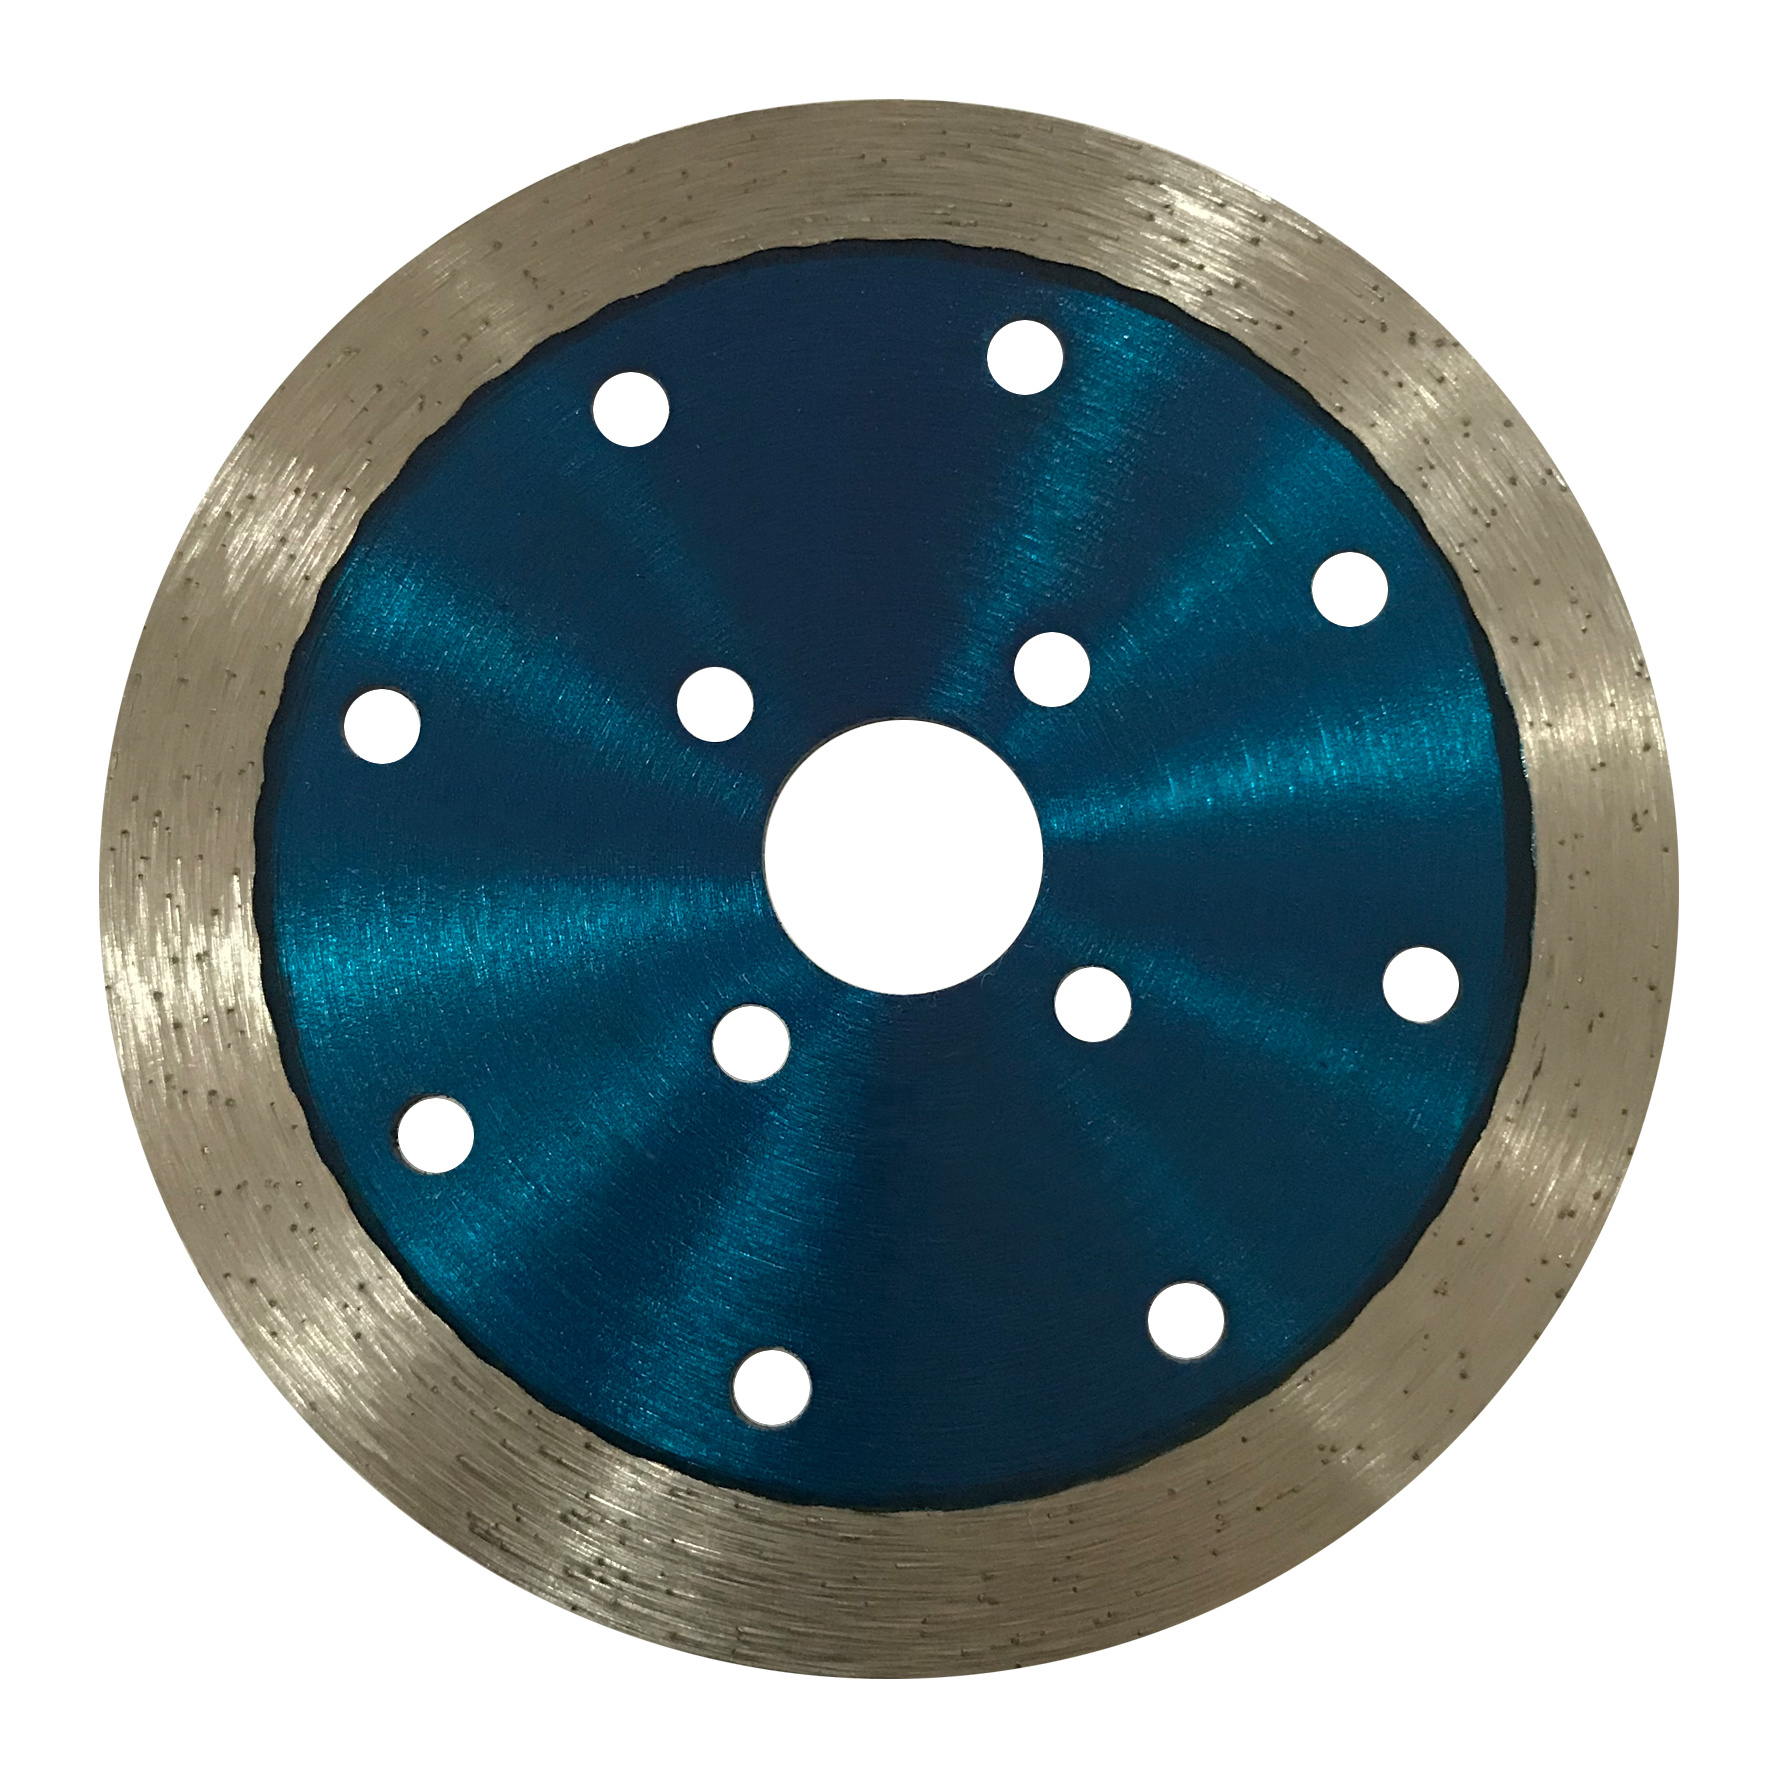 Diamond wet saw blade